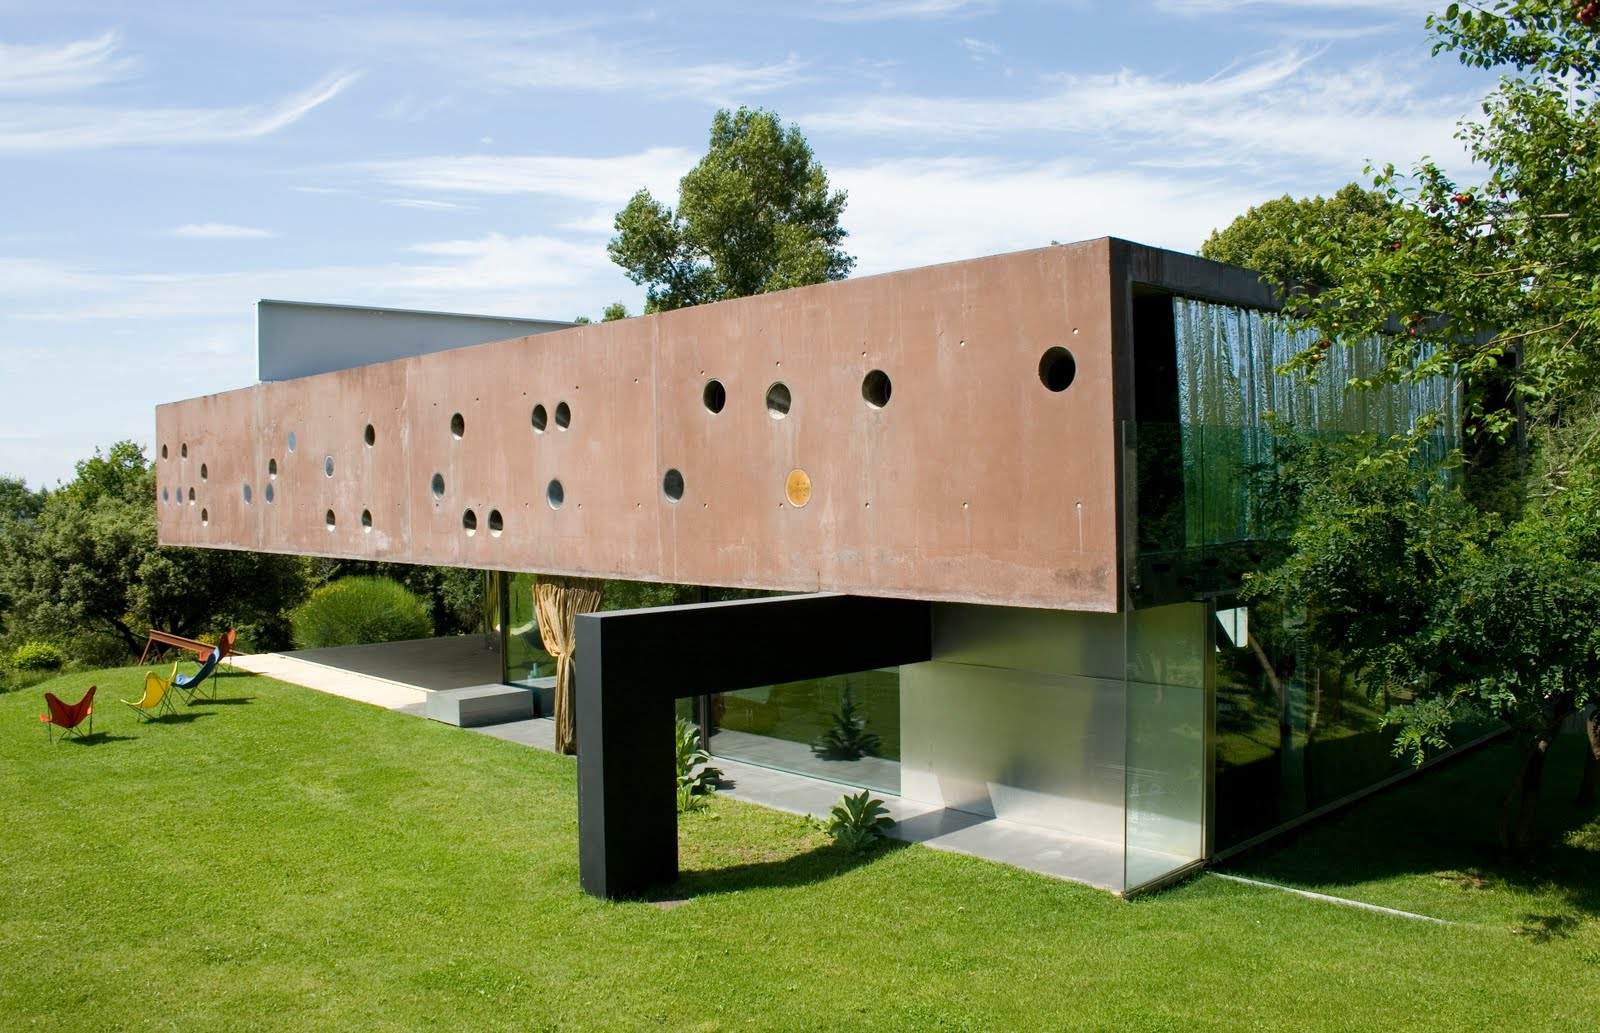 Arquitectura rem koolhaas casa en bordeaux for Maison de l enfance bordeaux